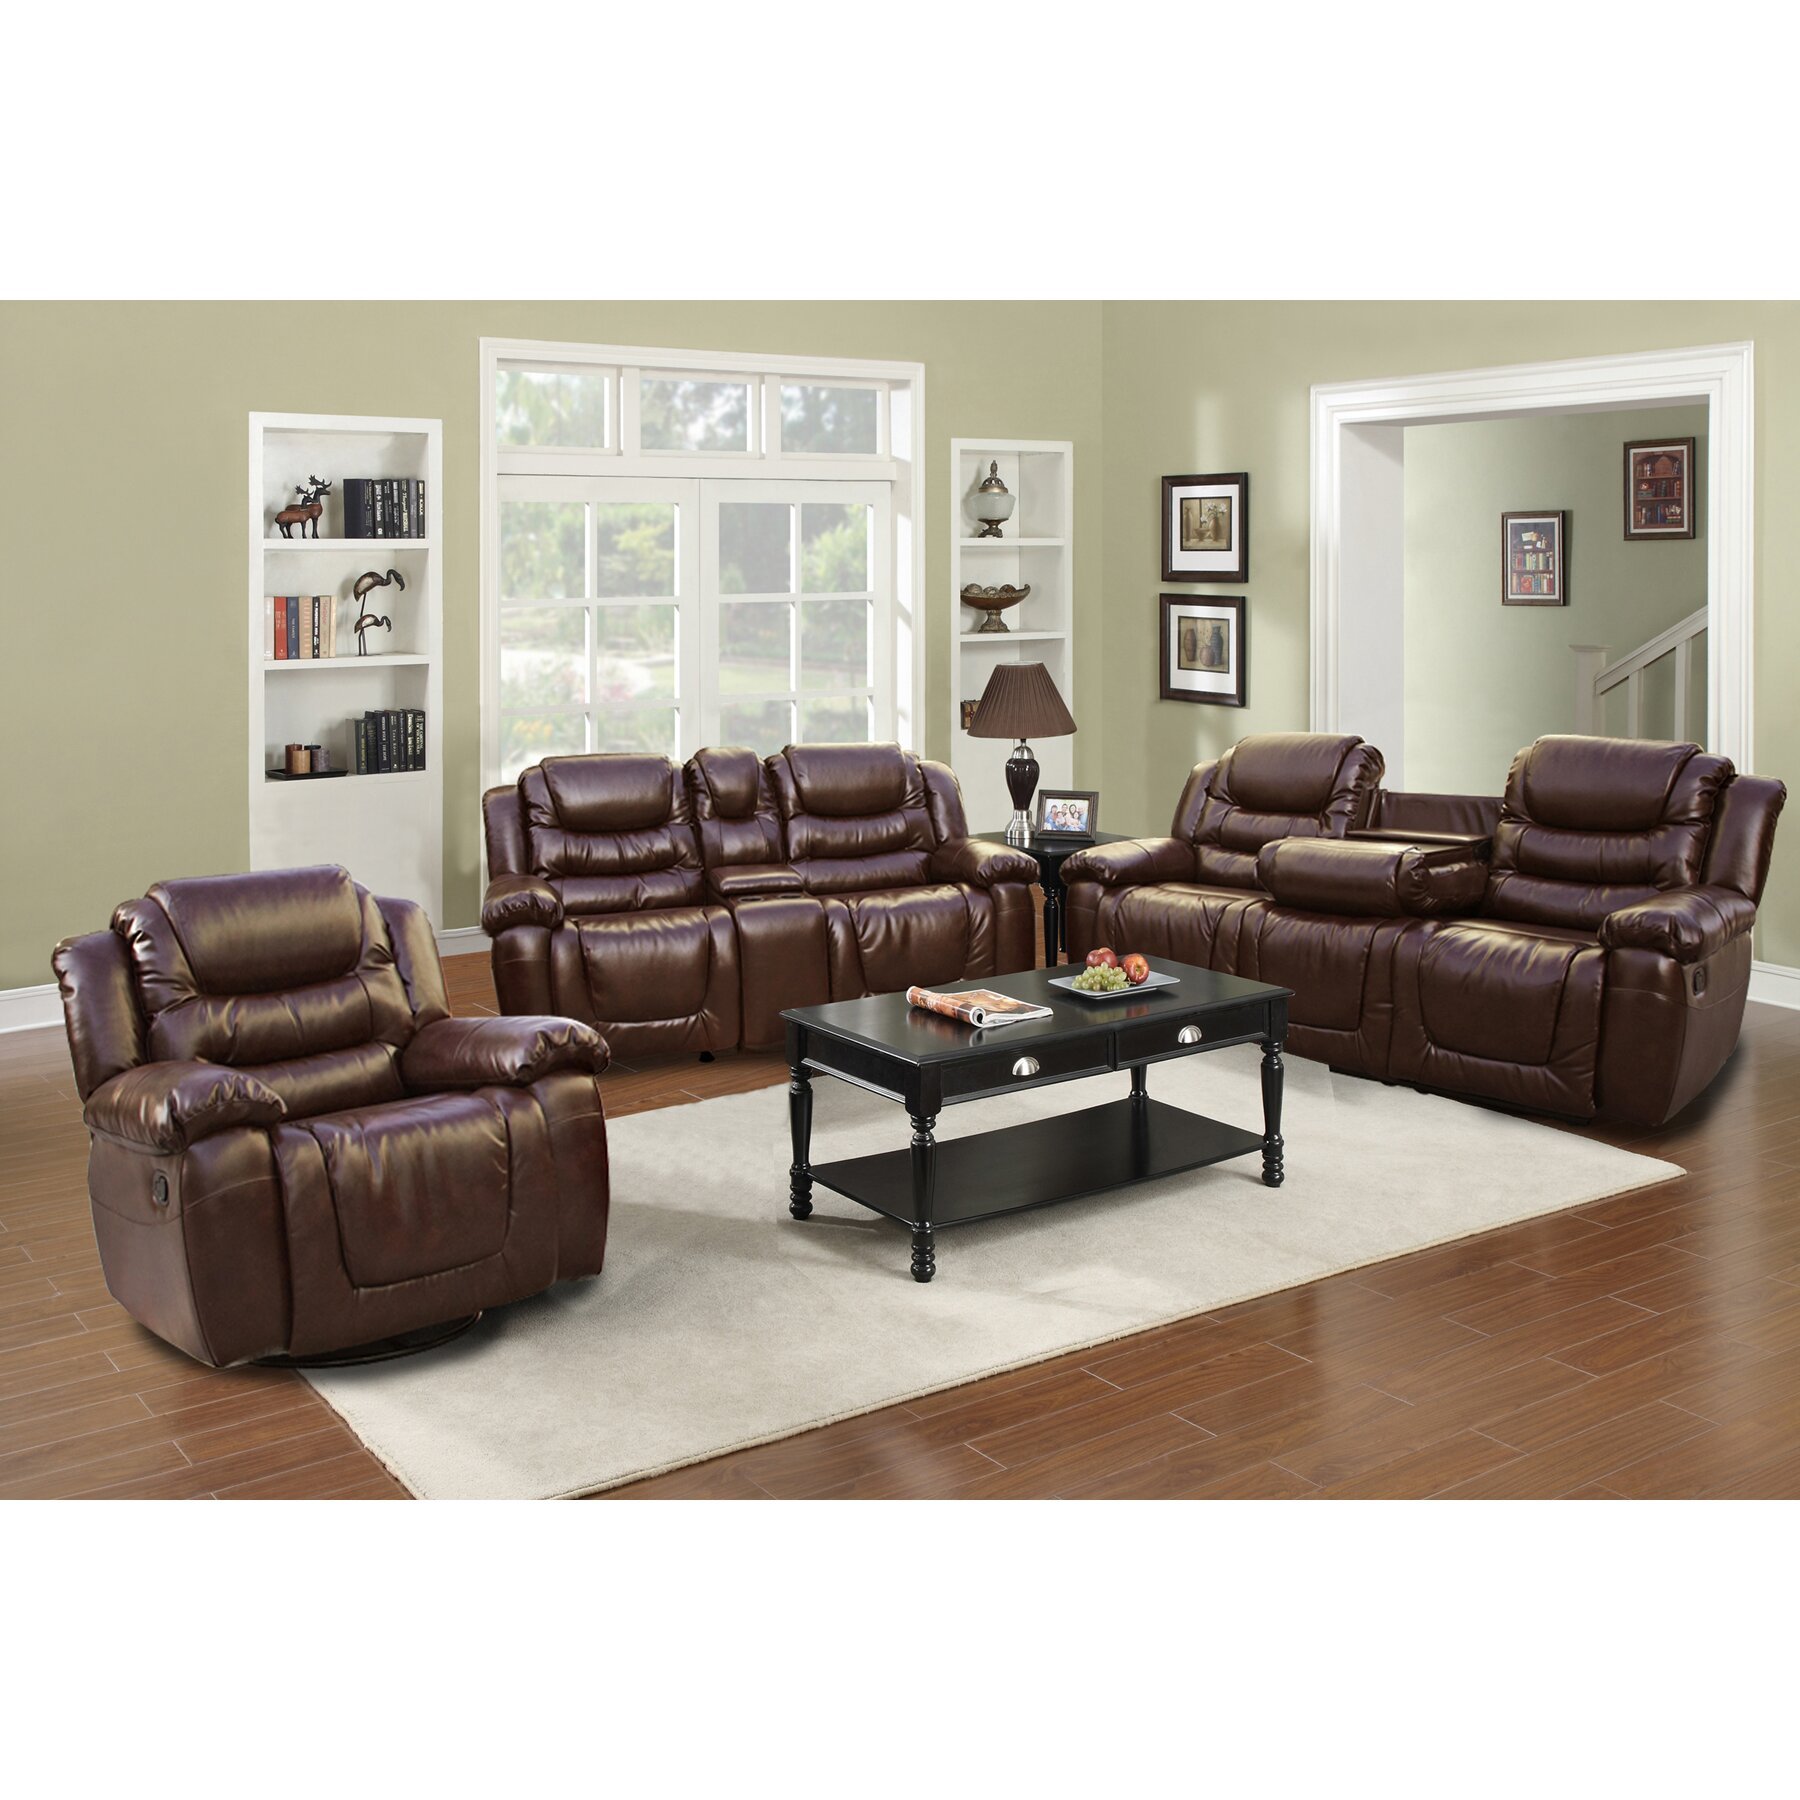 Beverly fine furniture ottawa living room collection